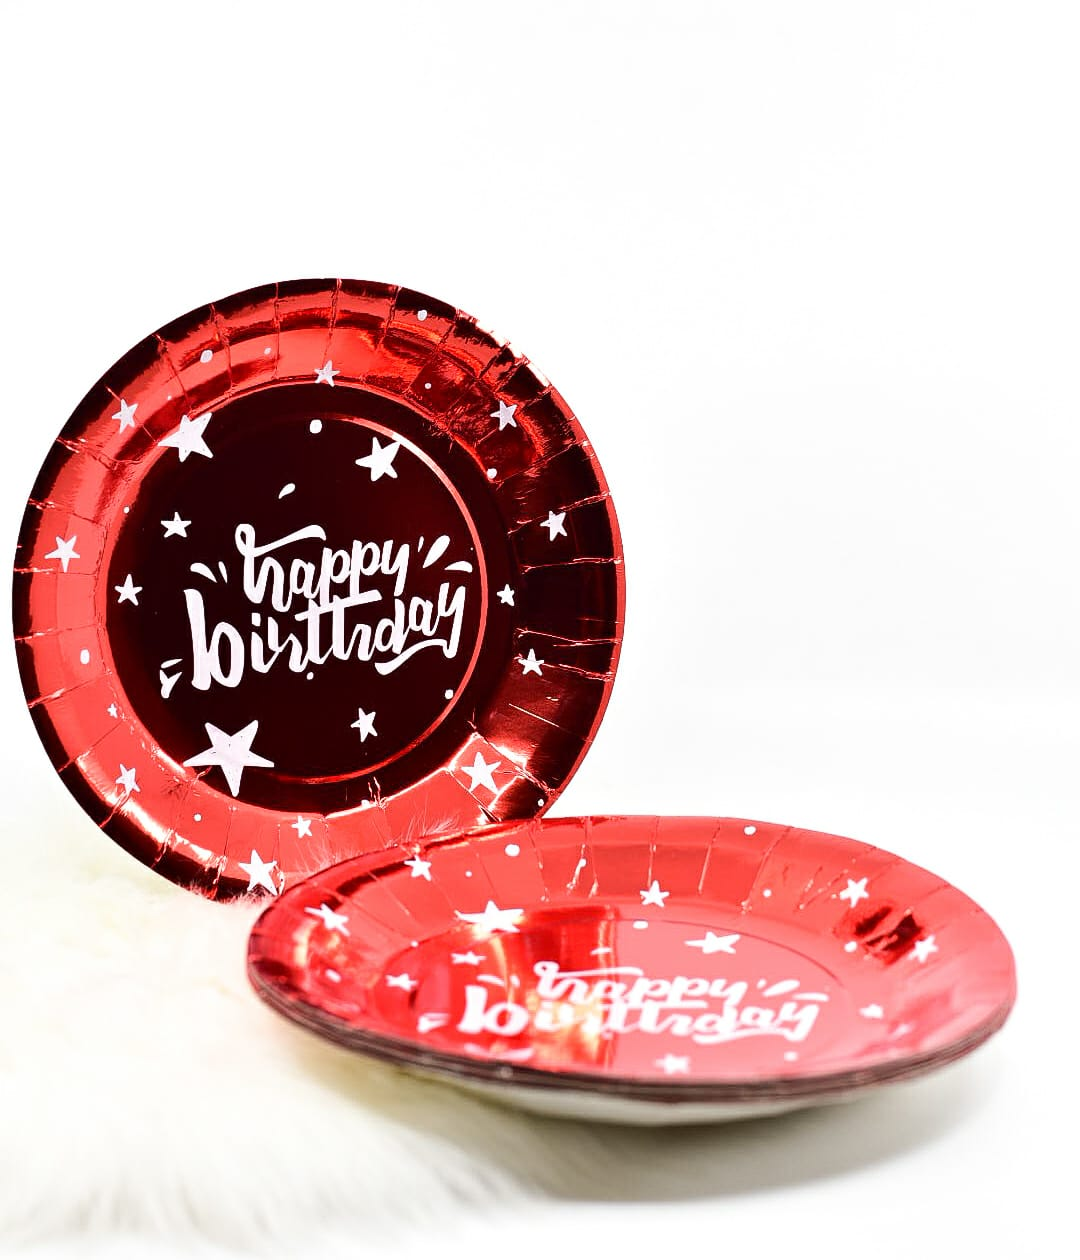 Happy Birthday Red Plates Set Of 10